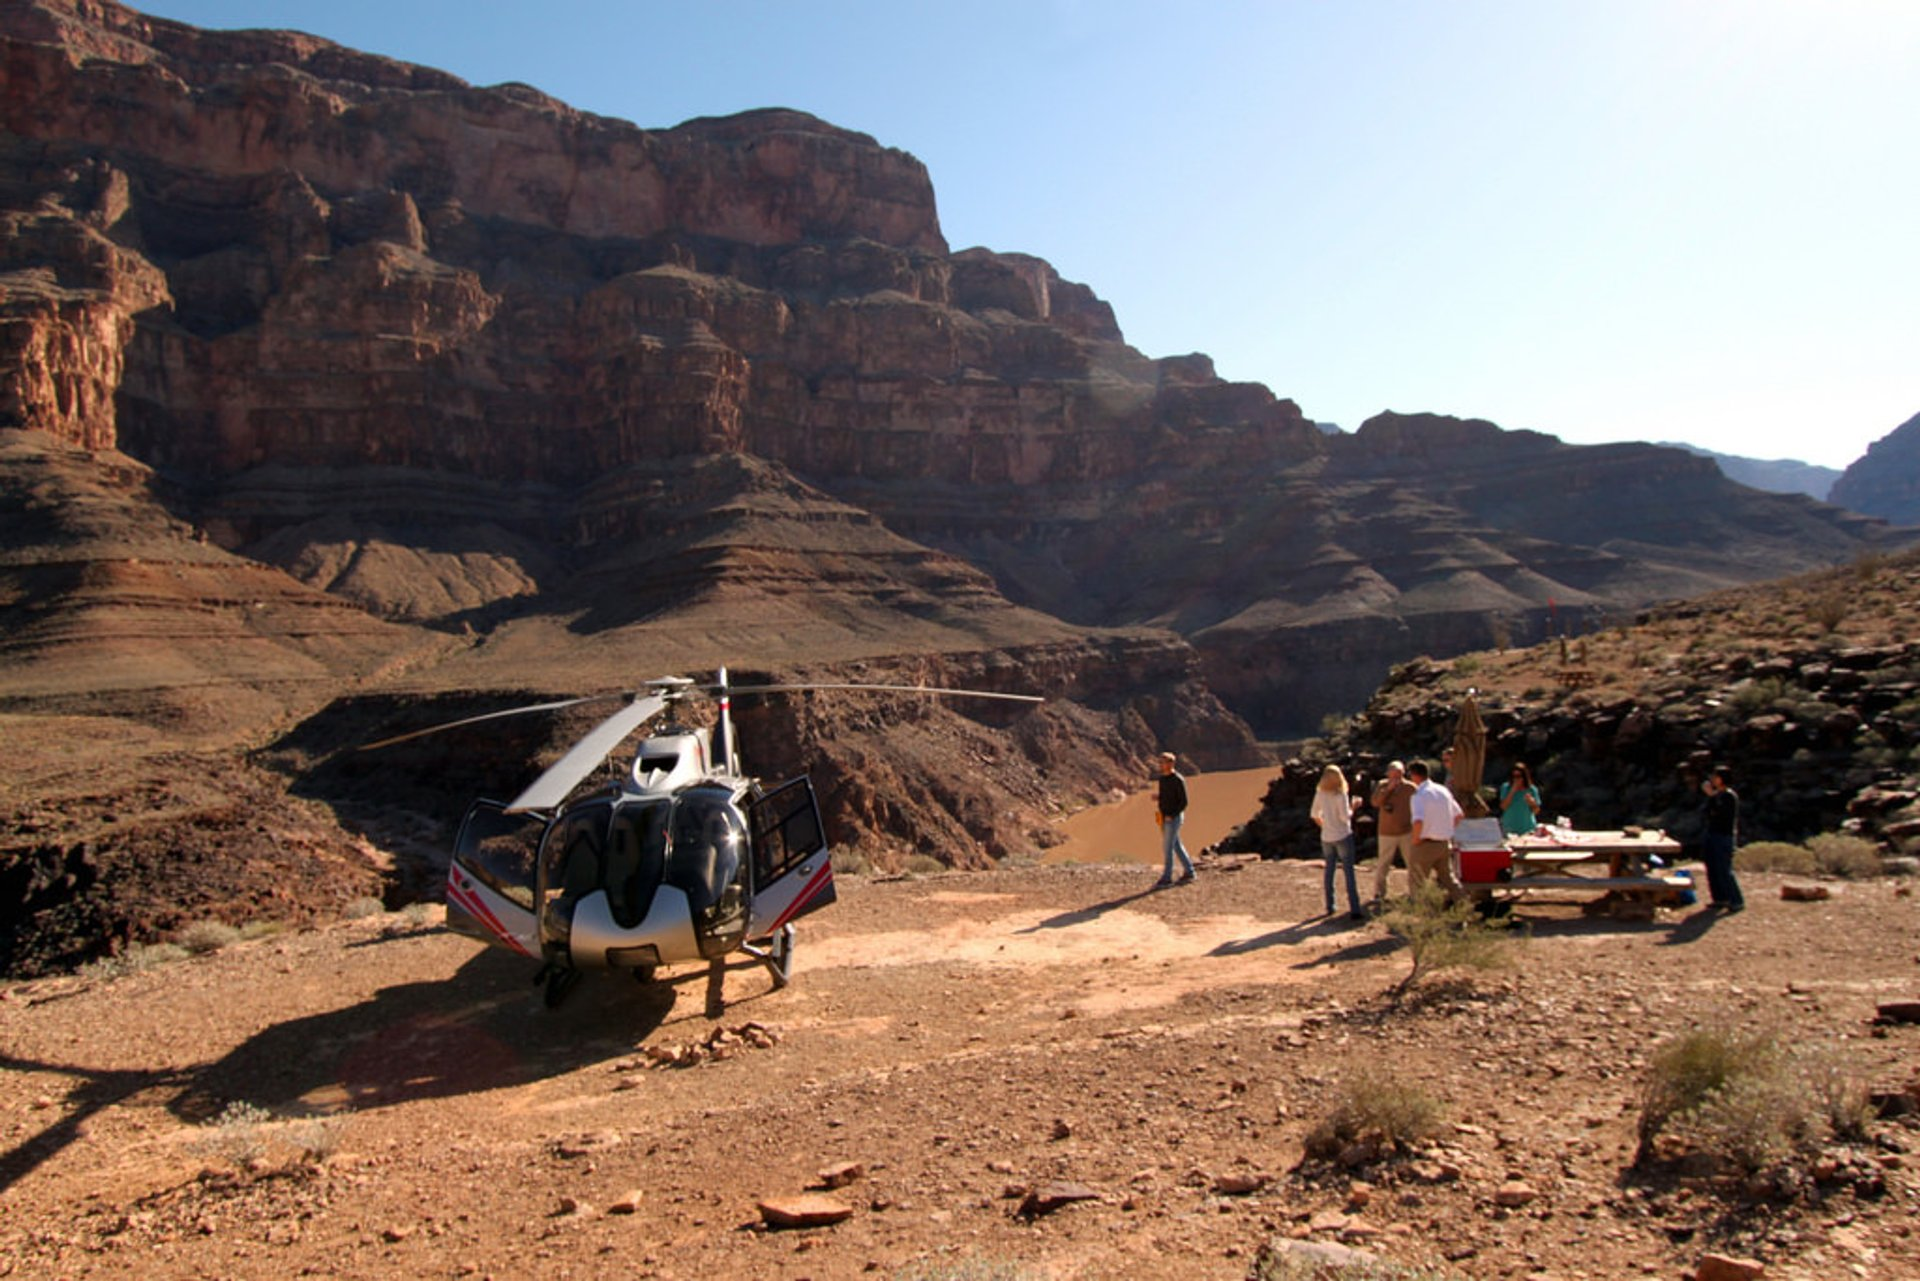 Private landing area & picnic table at West Grand Canyon, Arizona 2020